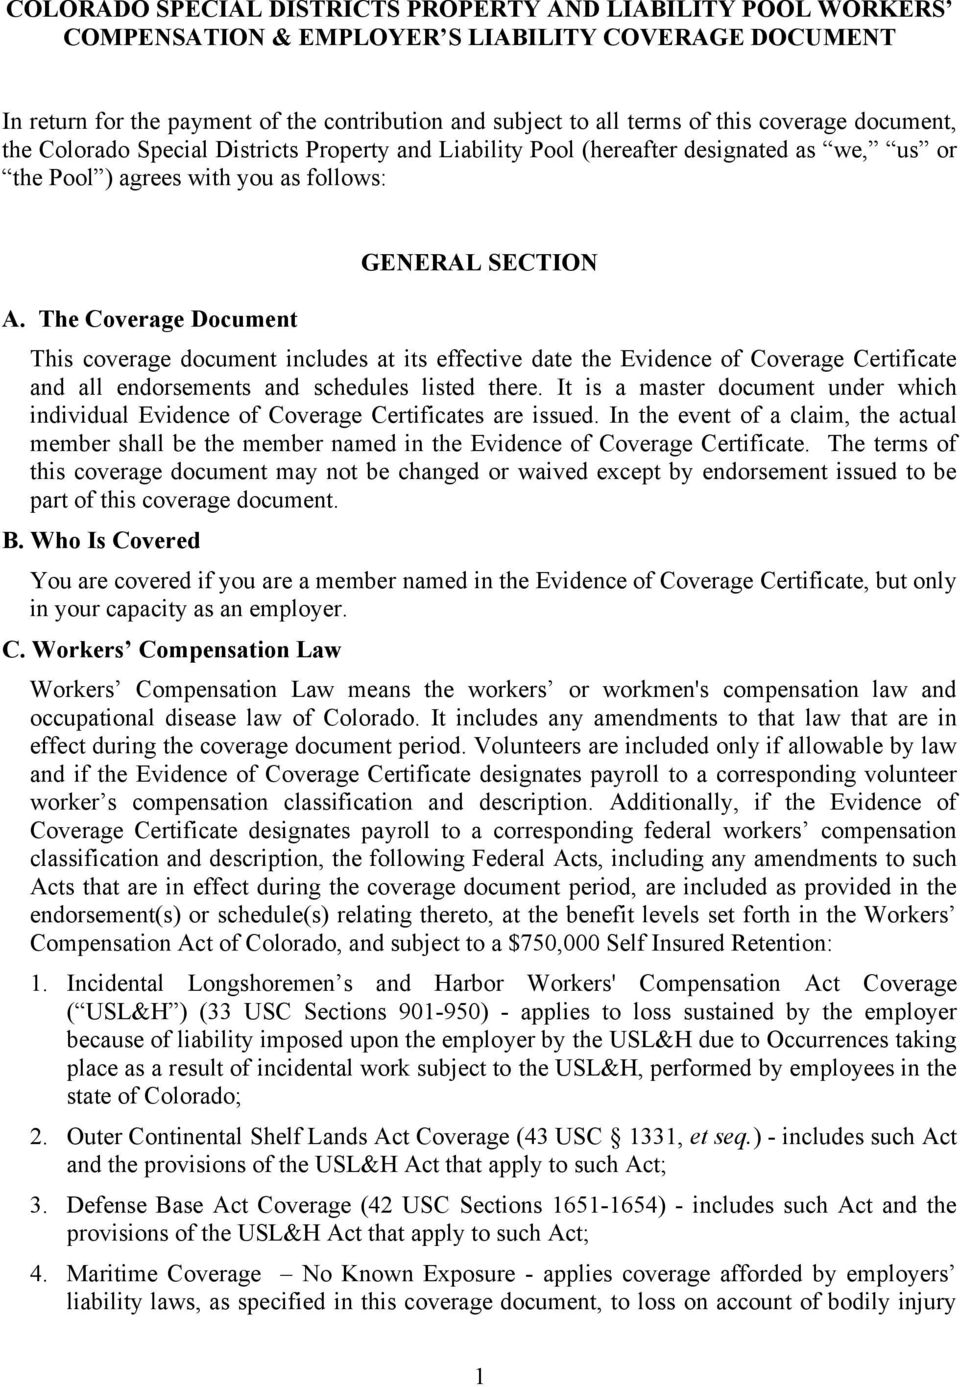 The Coverage Document GENERAL SECTION This coverage document includes at its effective date the Evidence of Coverage Certificate and all endorsements and schedules listed there.